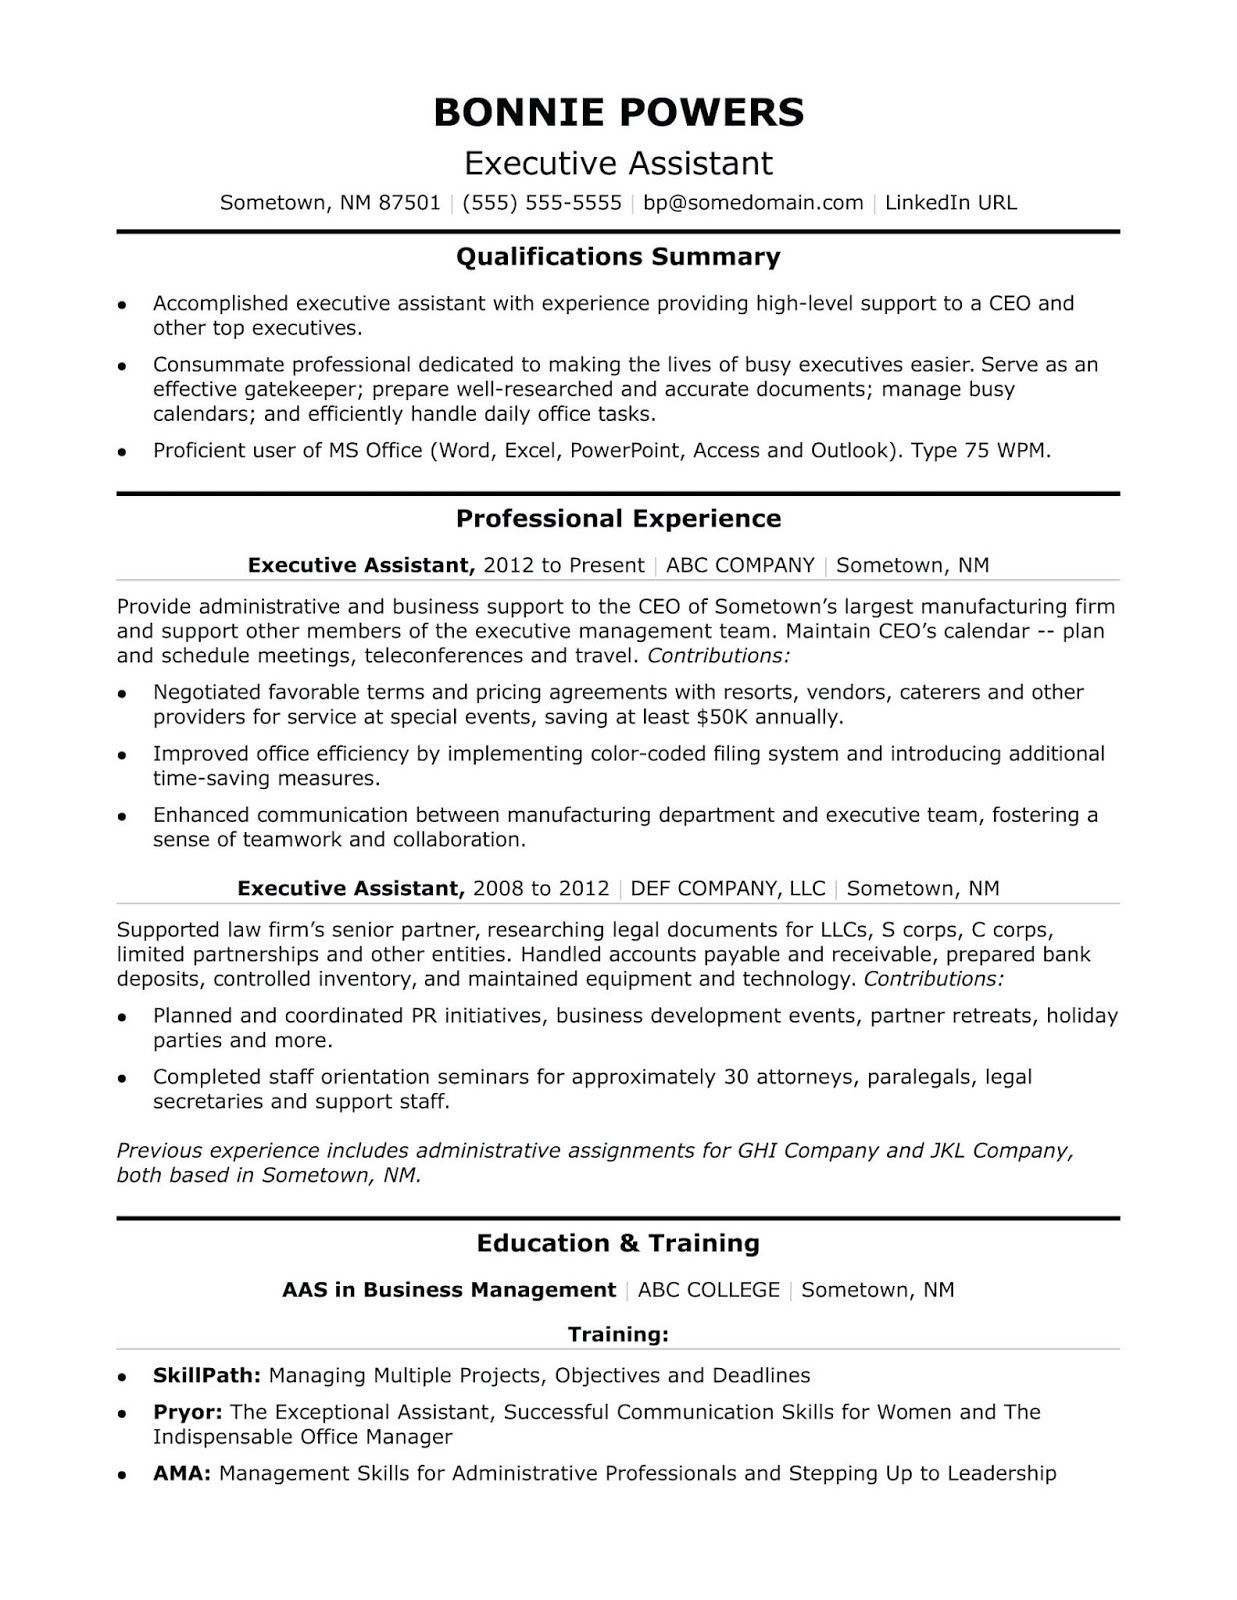 Administrative assistant resume objective 2019